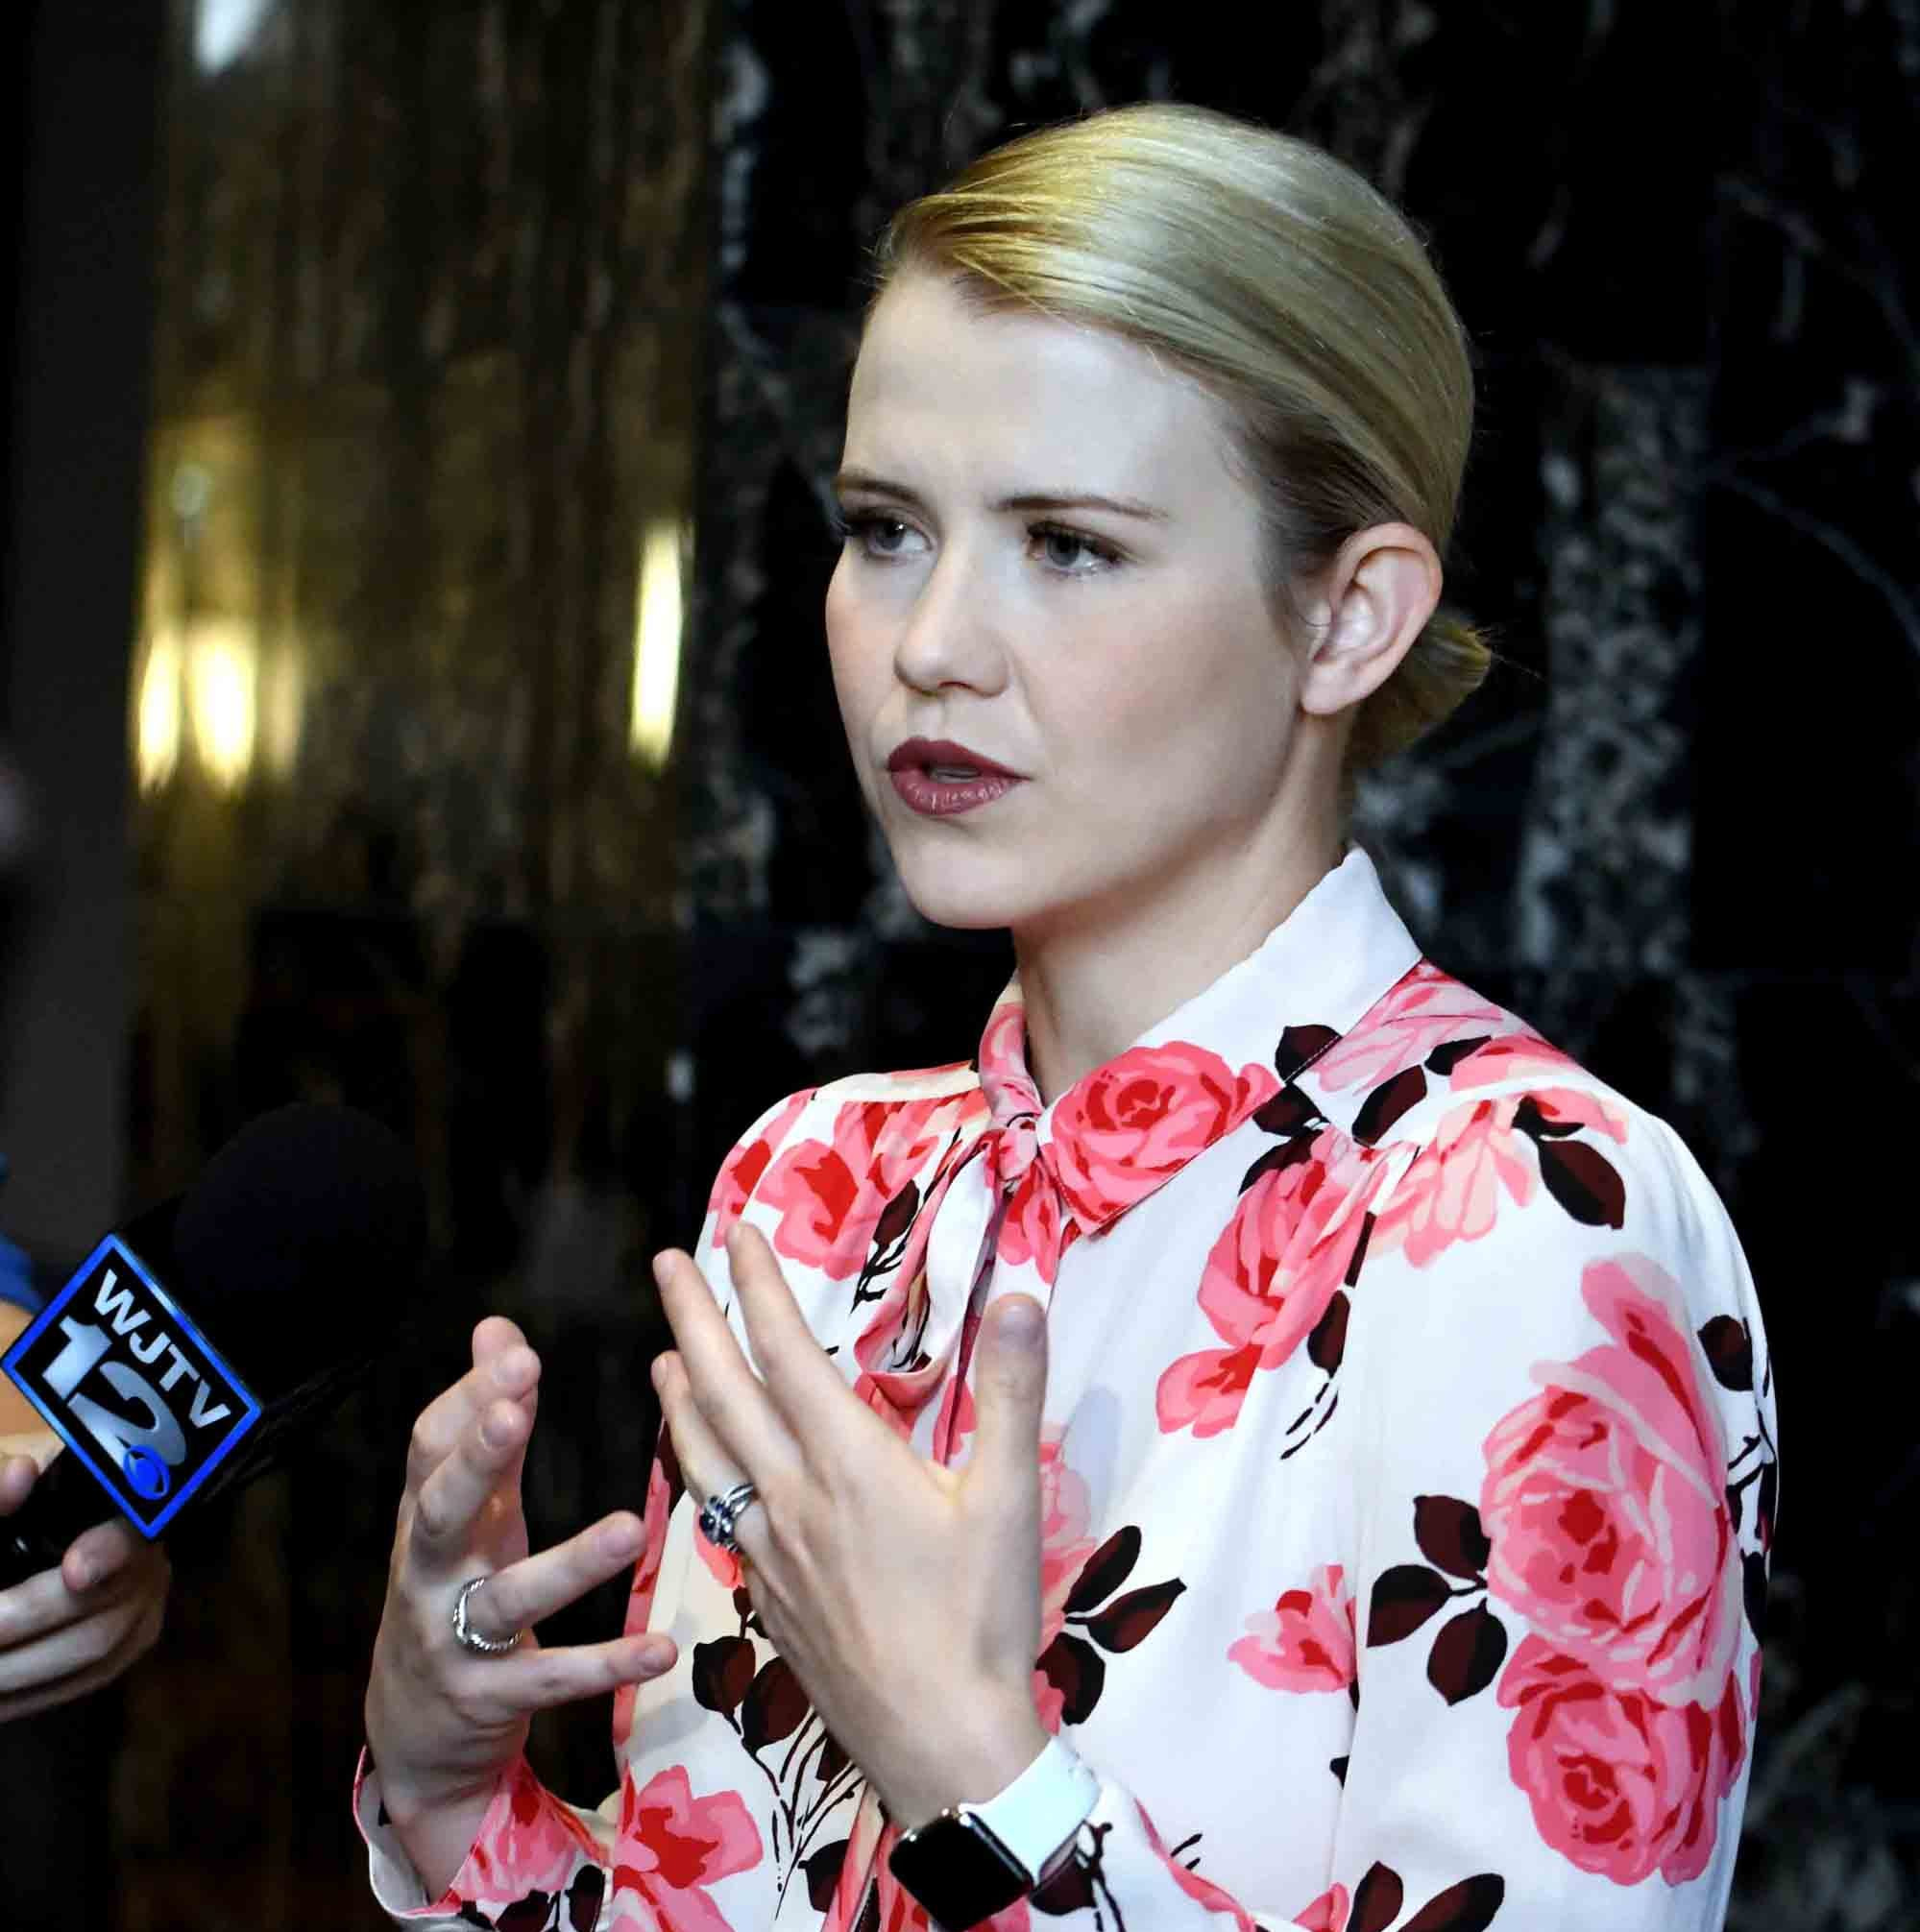 'I have a knife at your neck.' Elizabeth Smart recounts her kidnapping in Hattiesburg